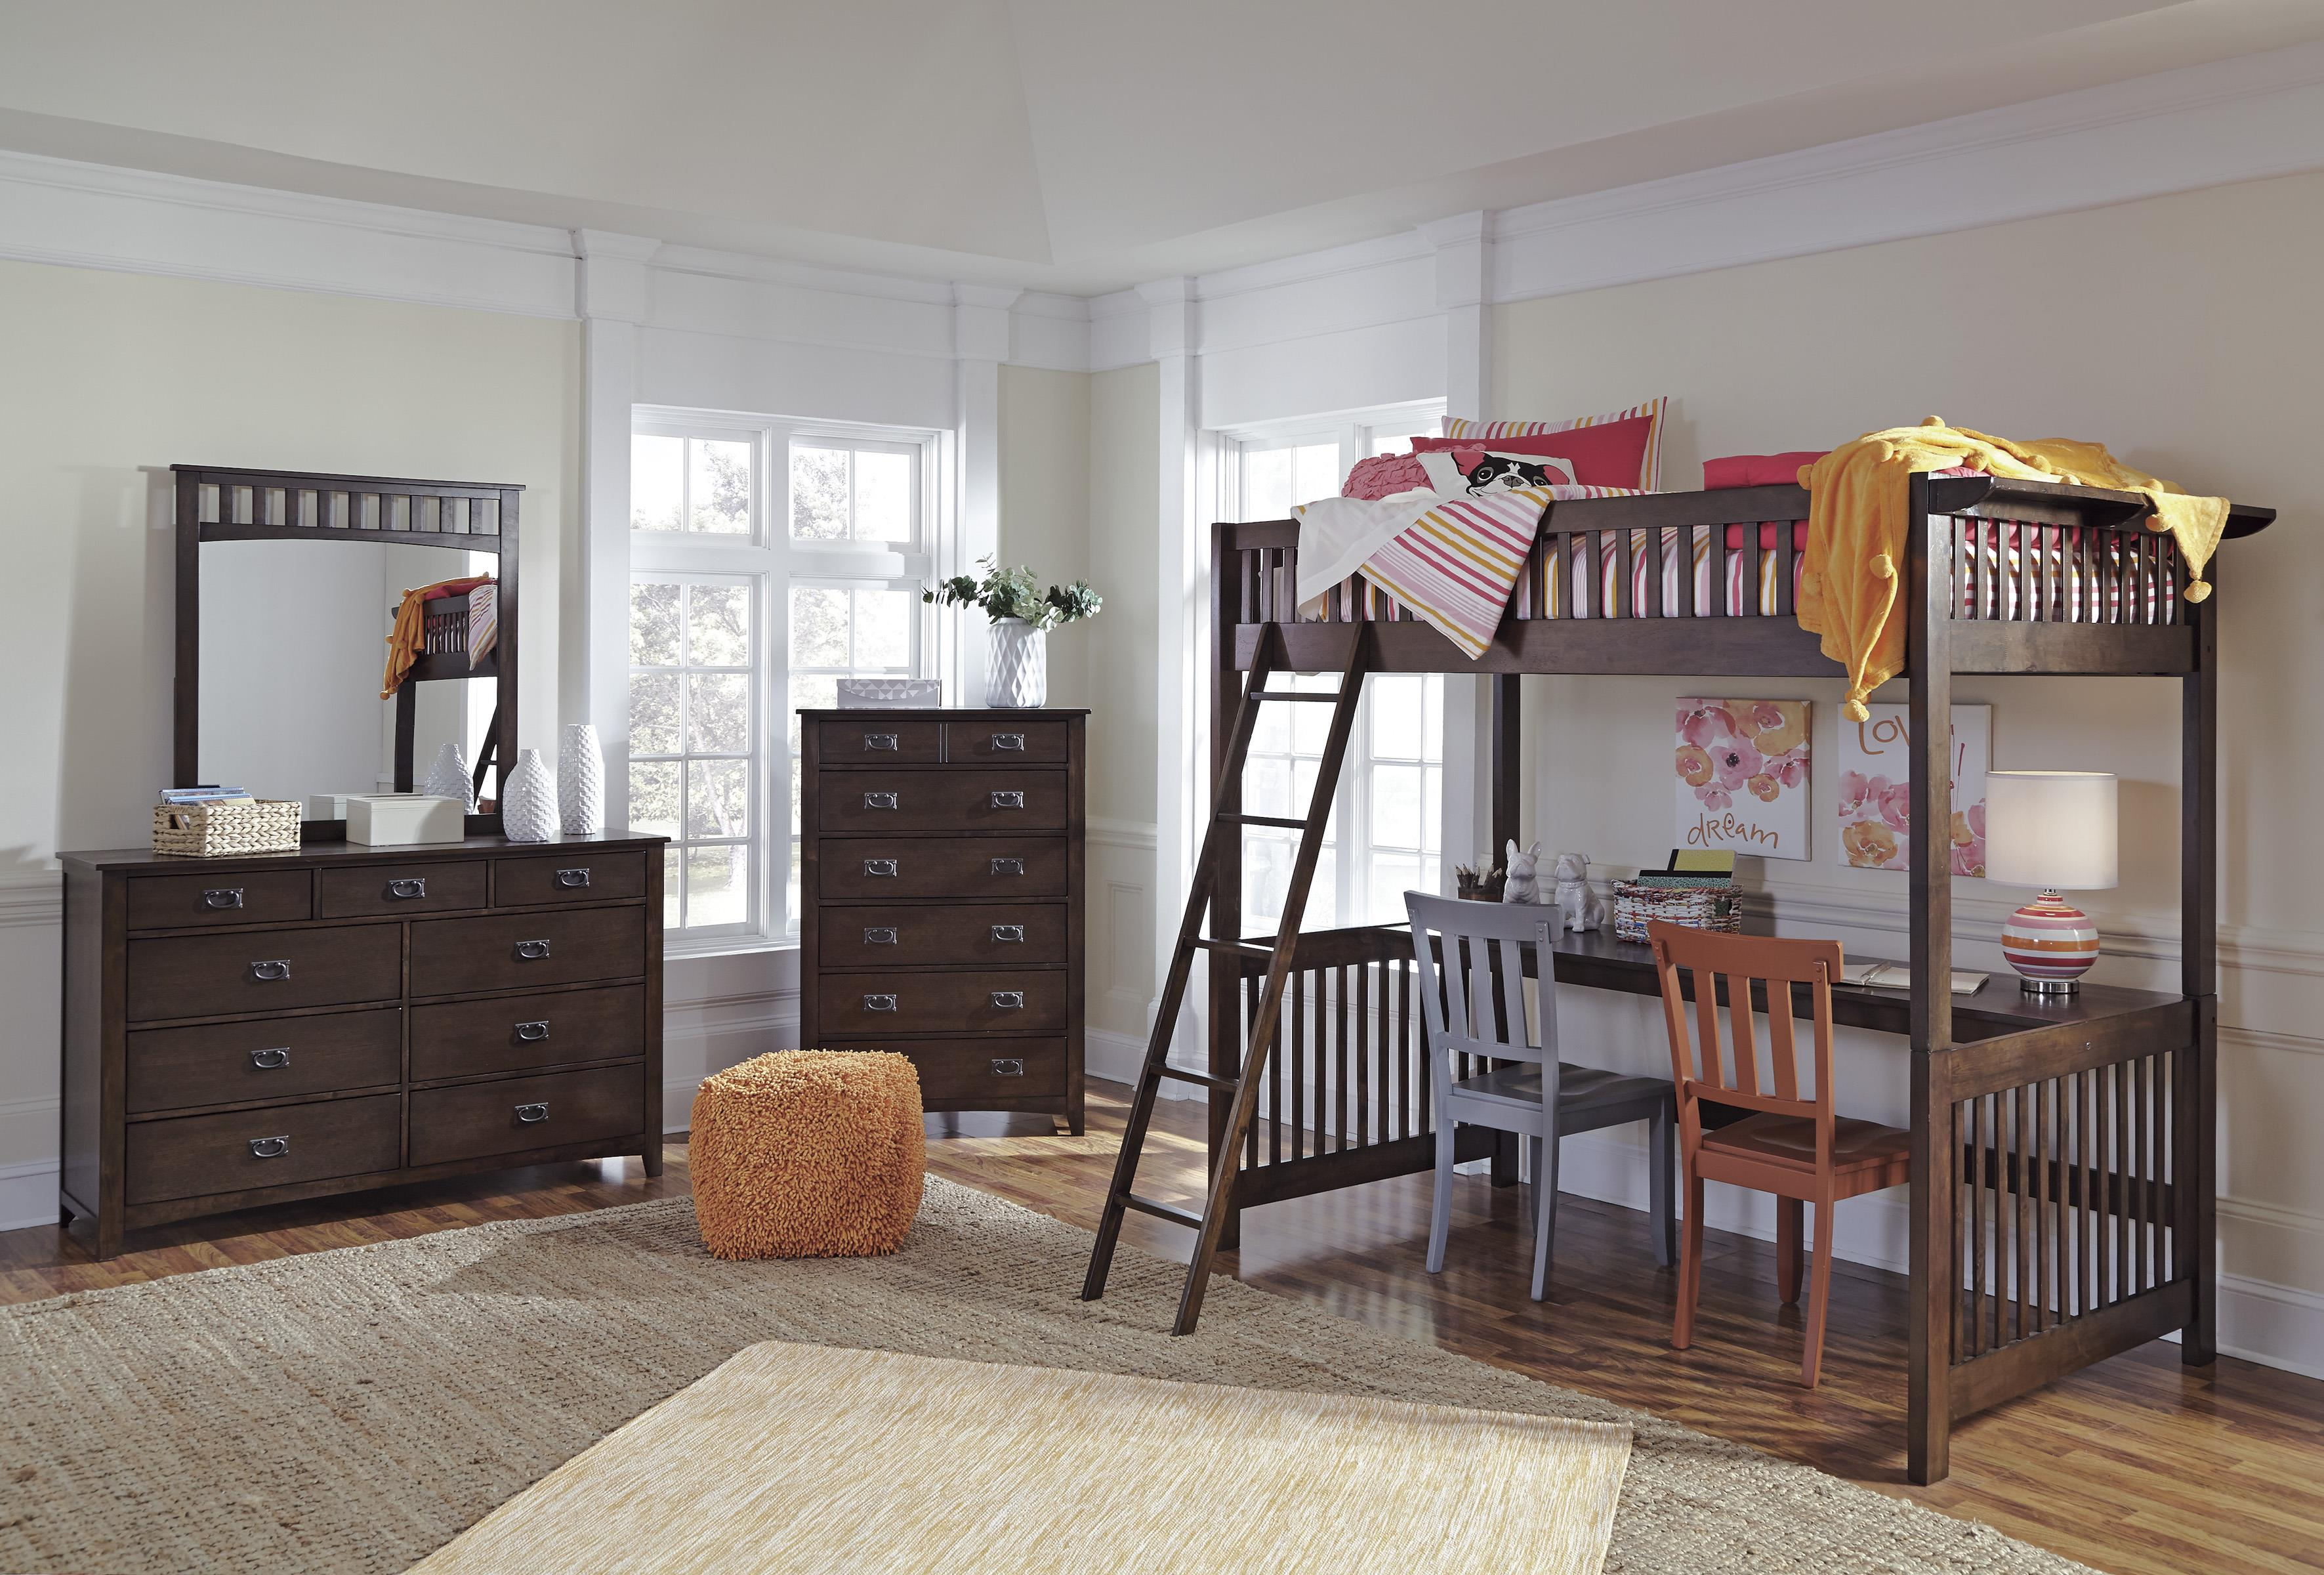 Signature Design by Ashley Strenton Lofted Twin Bedroom Group - Item Number: B568 Twin Bedroom Group 2